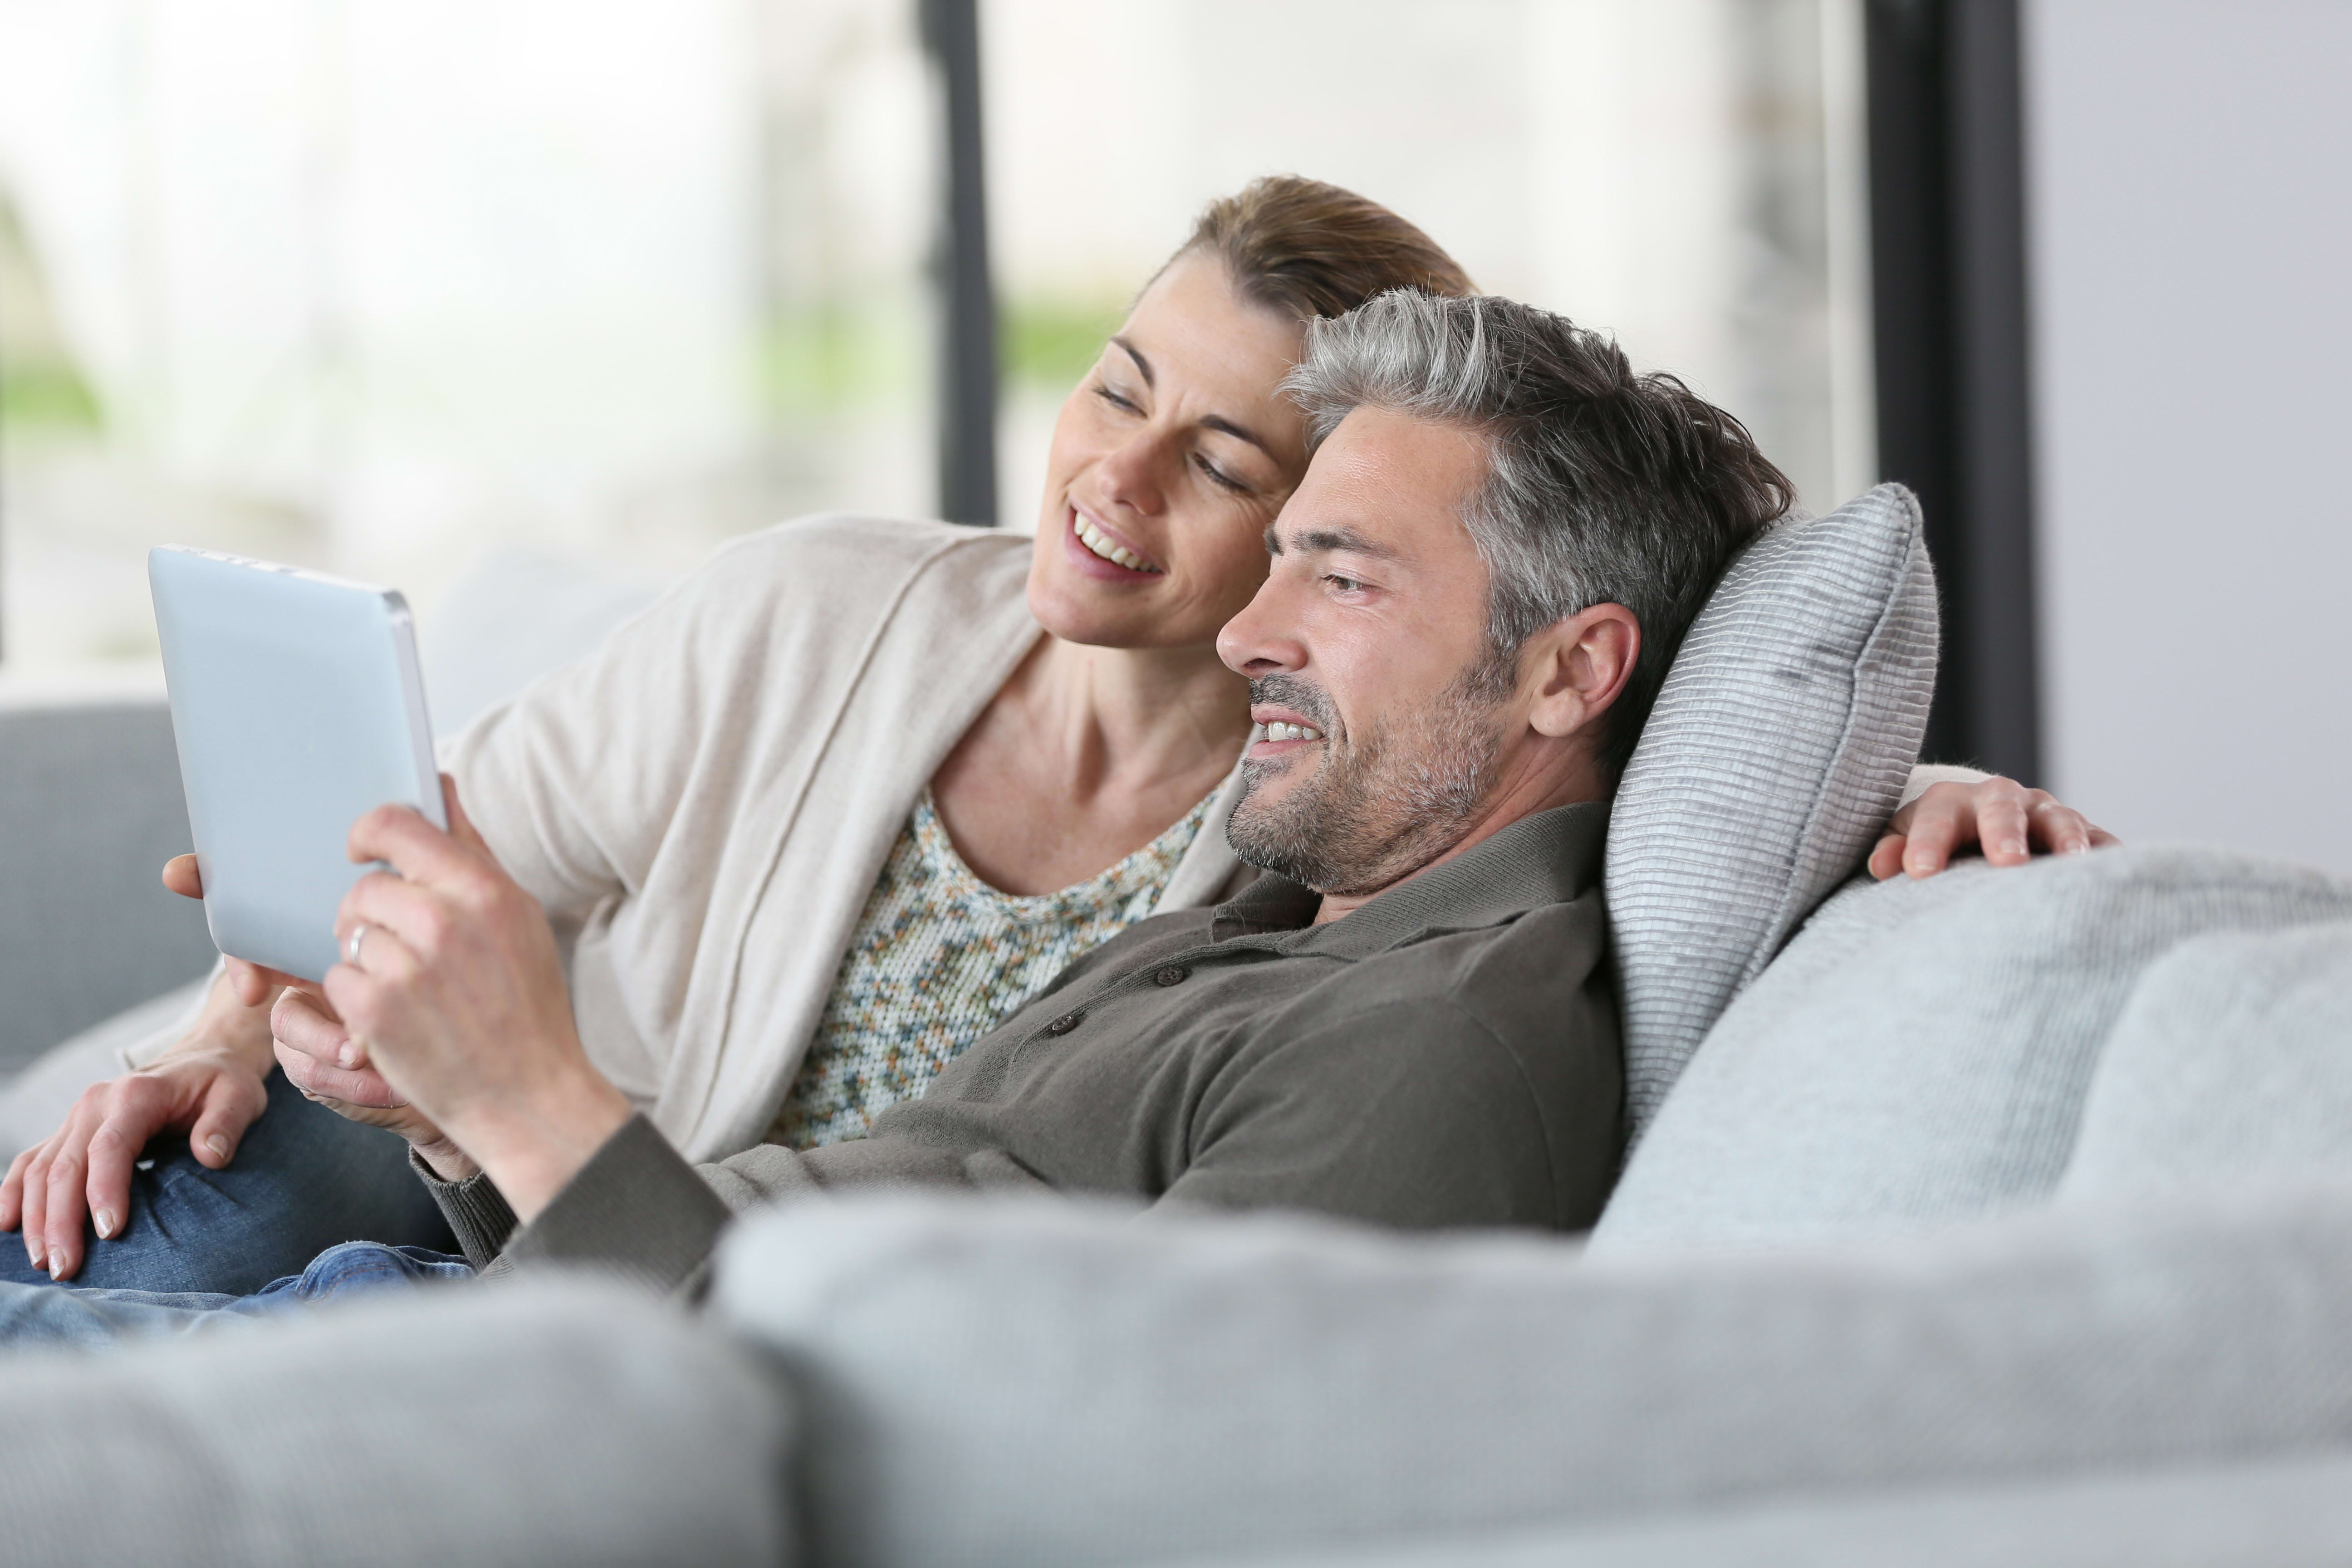 Image of a couple looking at a tablet